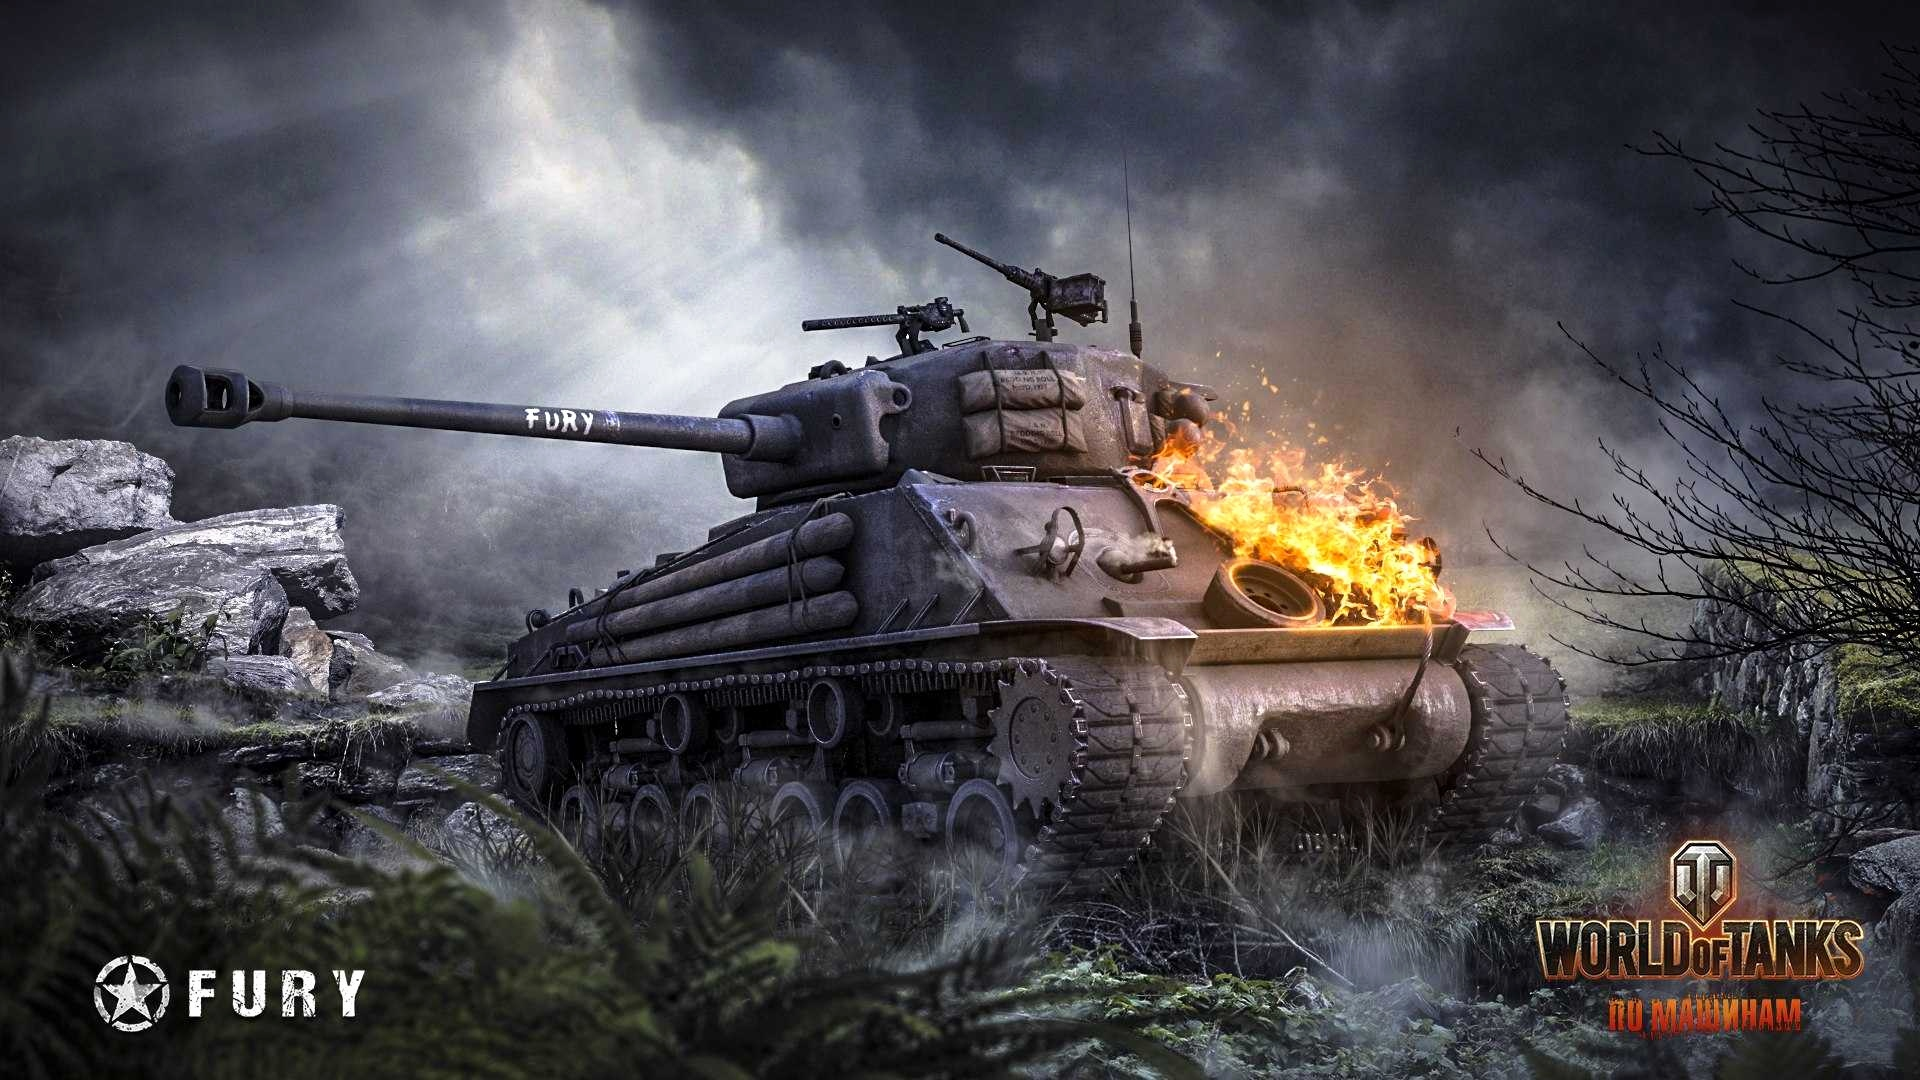 World Of Tank Backgrounds   728x410   Download HD Wallpaper 1920x1080